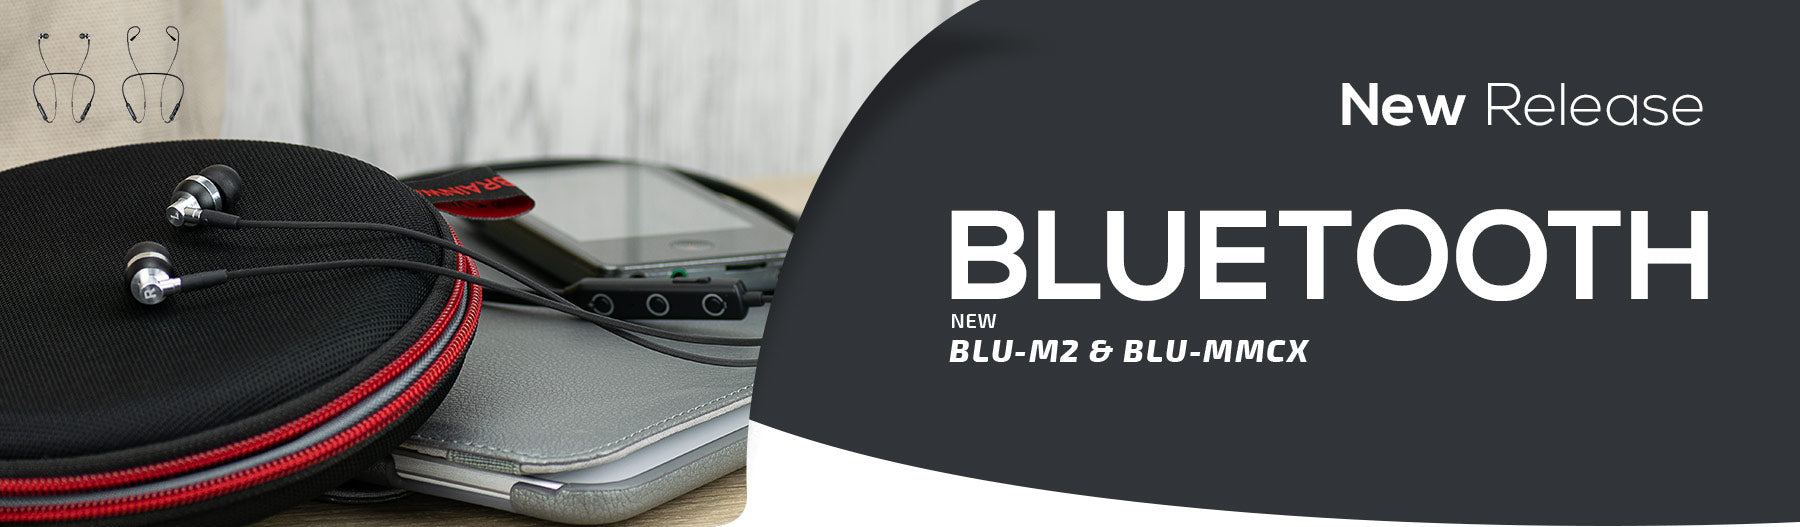 Wireless is back - New Bluetooth Pre-Order